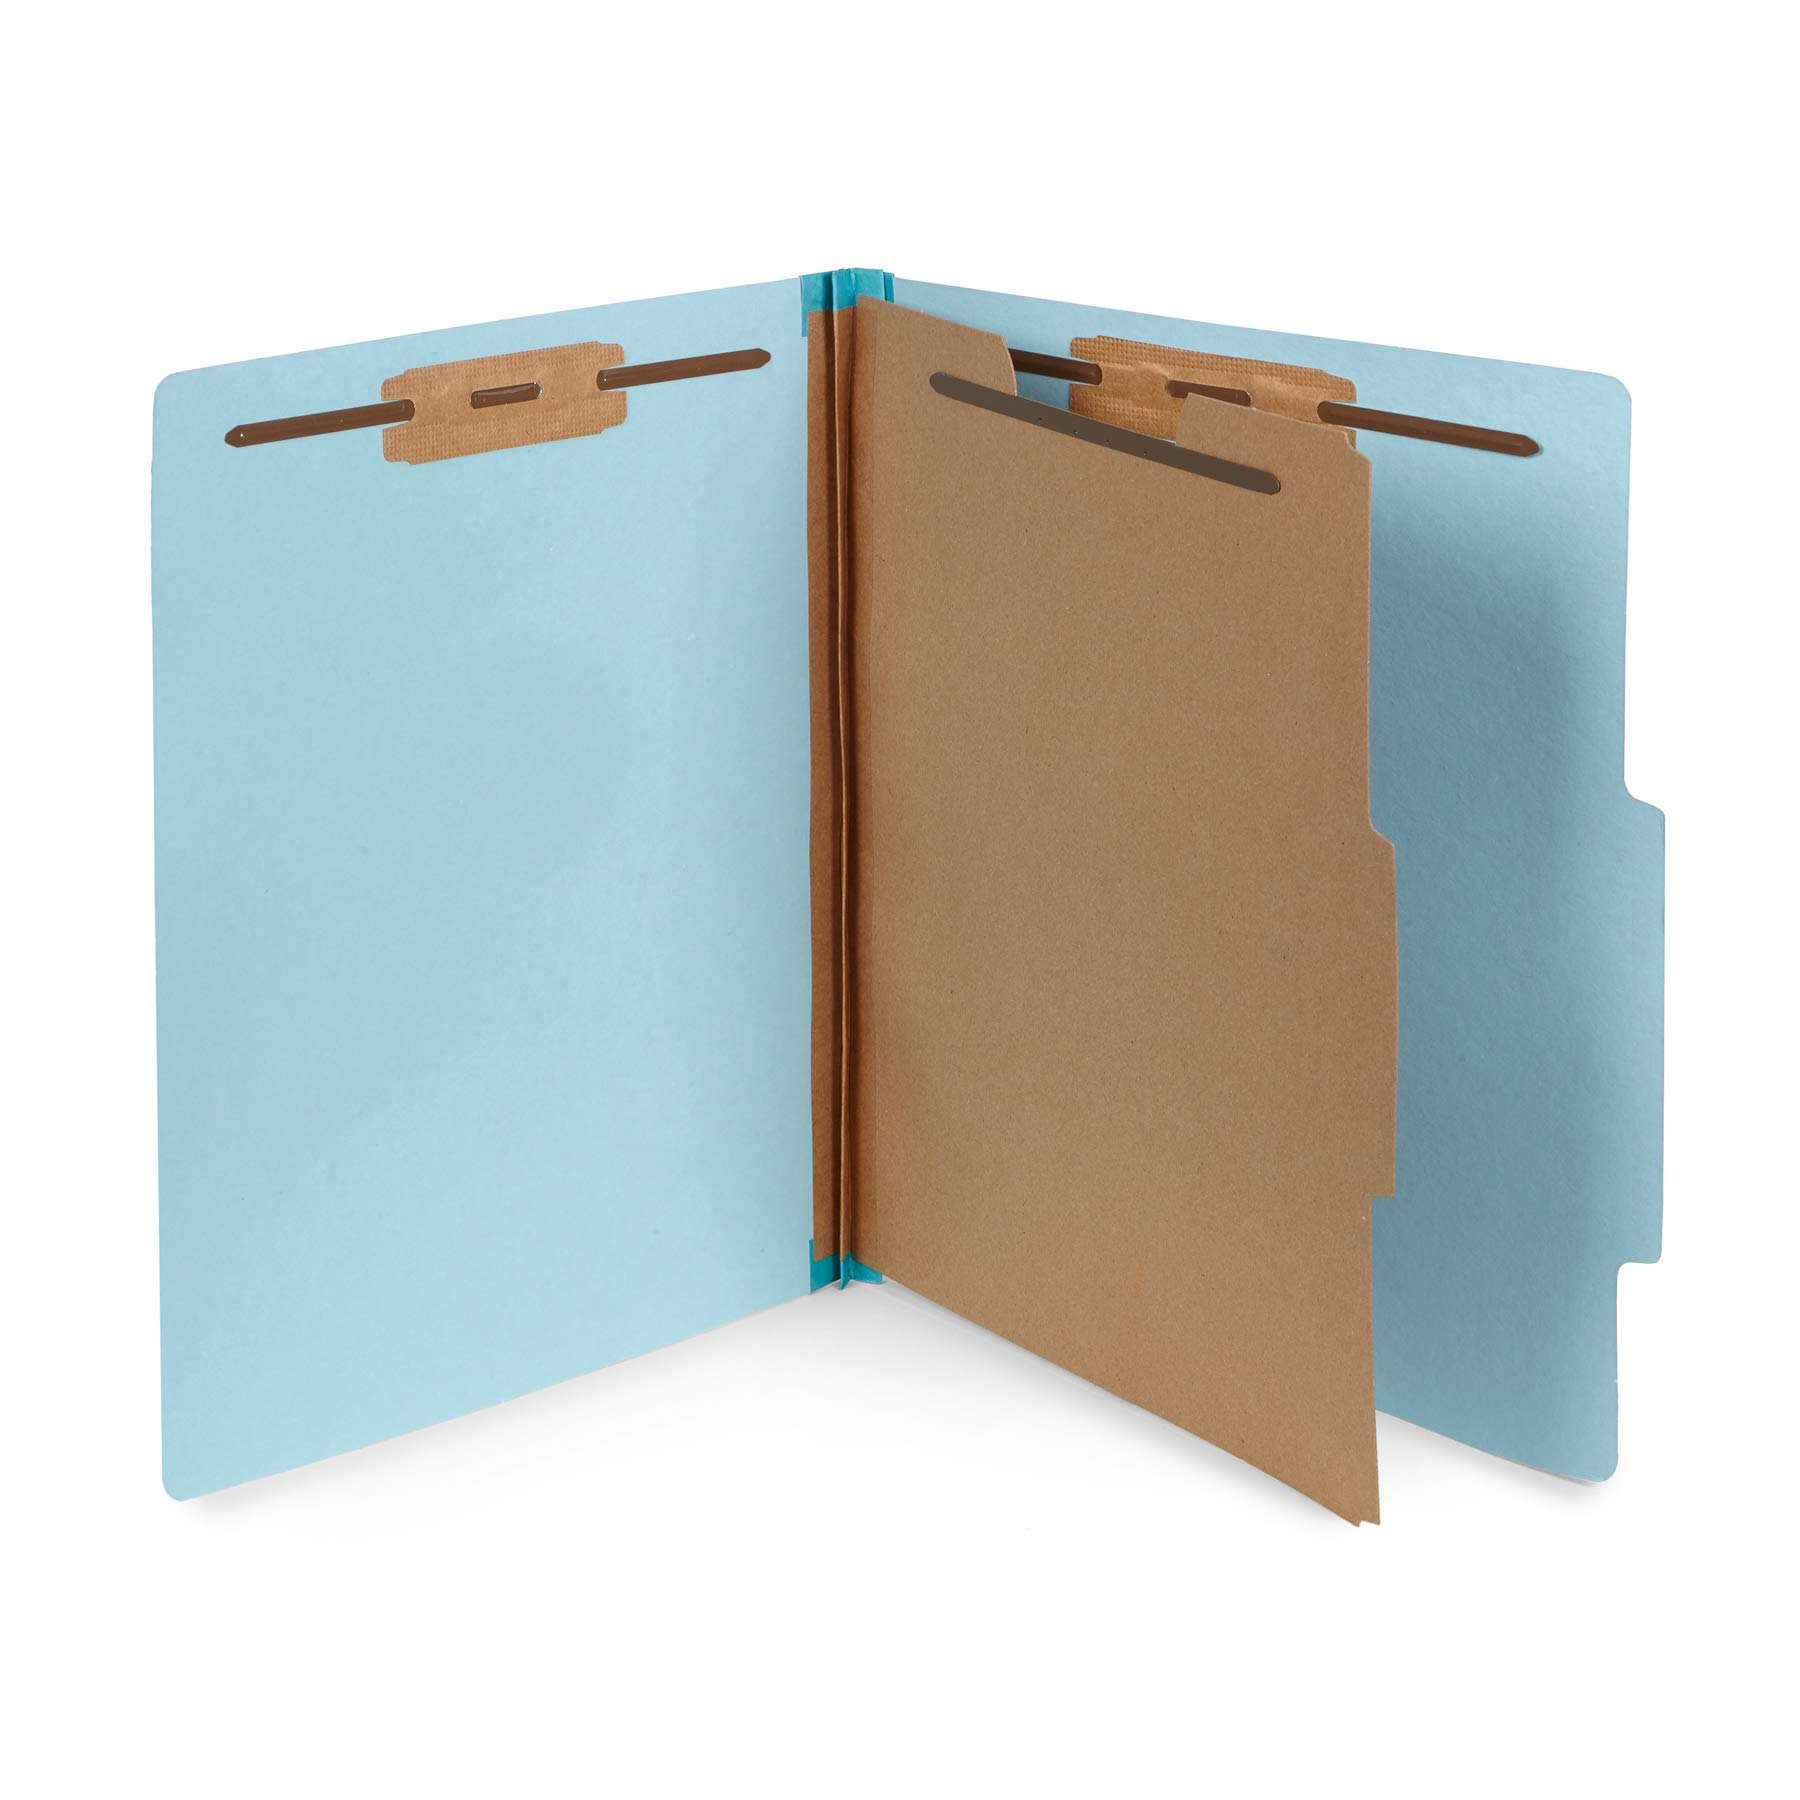 10 Blue Classification Folders - 1 Divider - 2 Inch Tyvek Expansions - Durable 2 Prongs Designed to Organize Standard Medical Files, Law Client Files, Office Reports - Letter Size, Blue, 10 Pack by Blue Summit Supplies